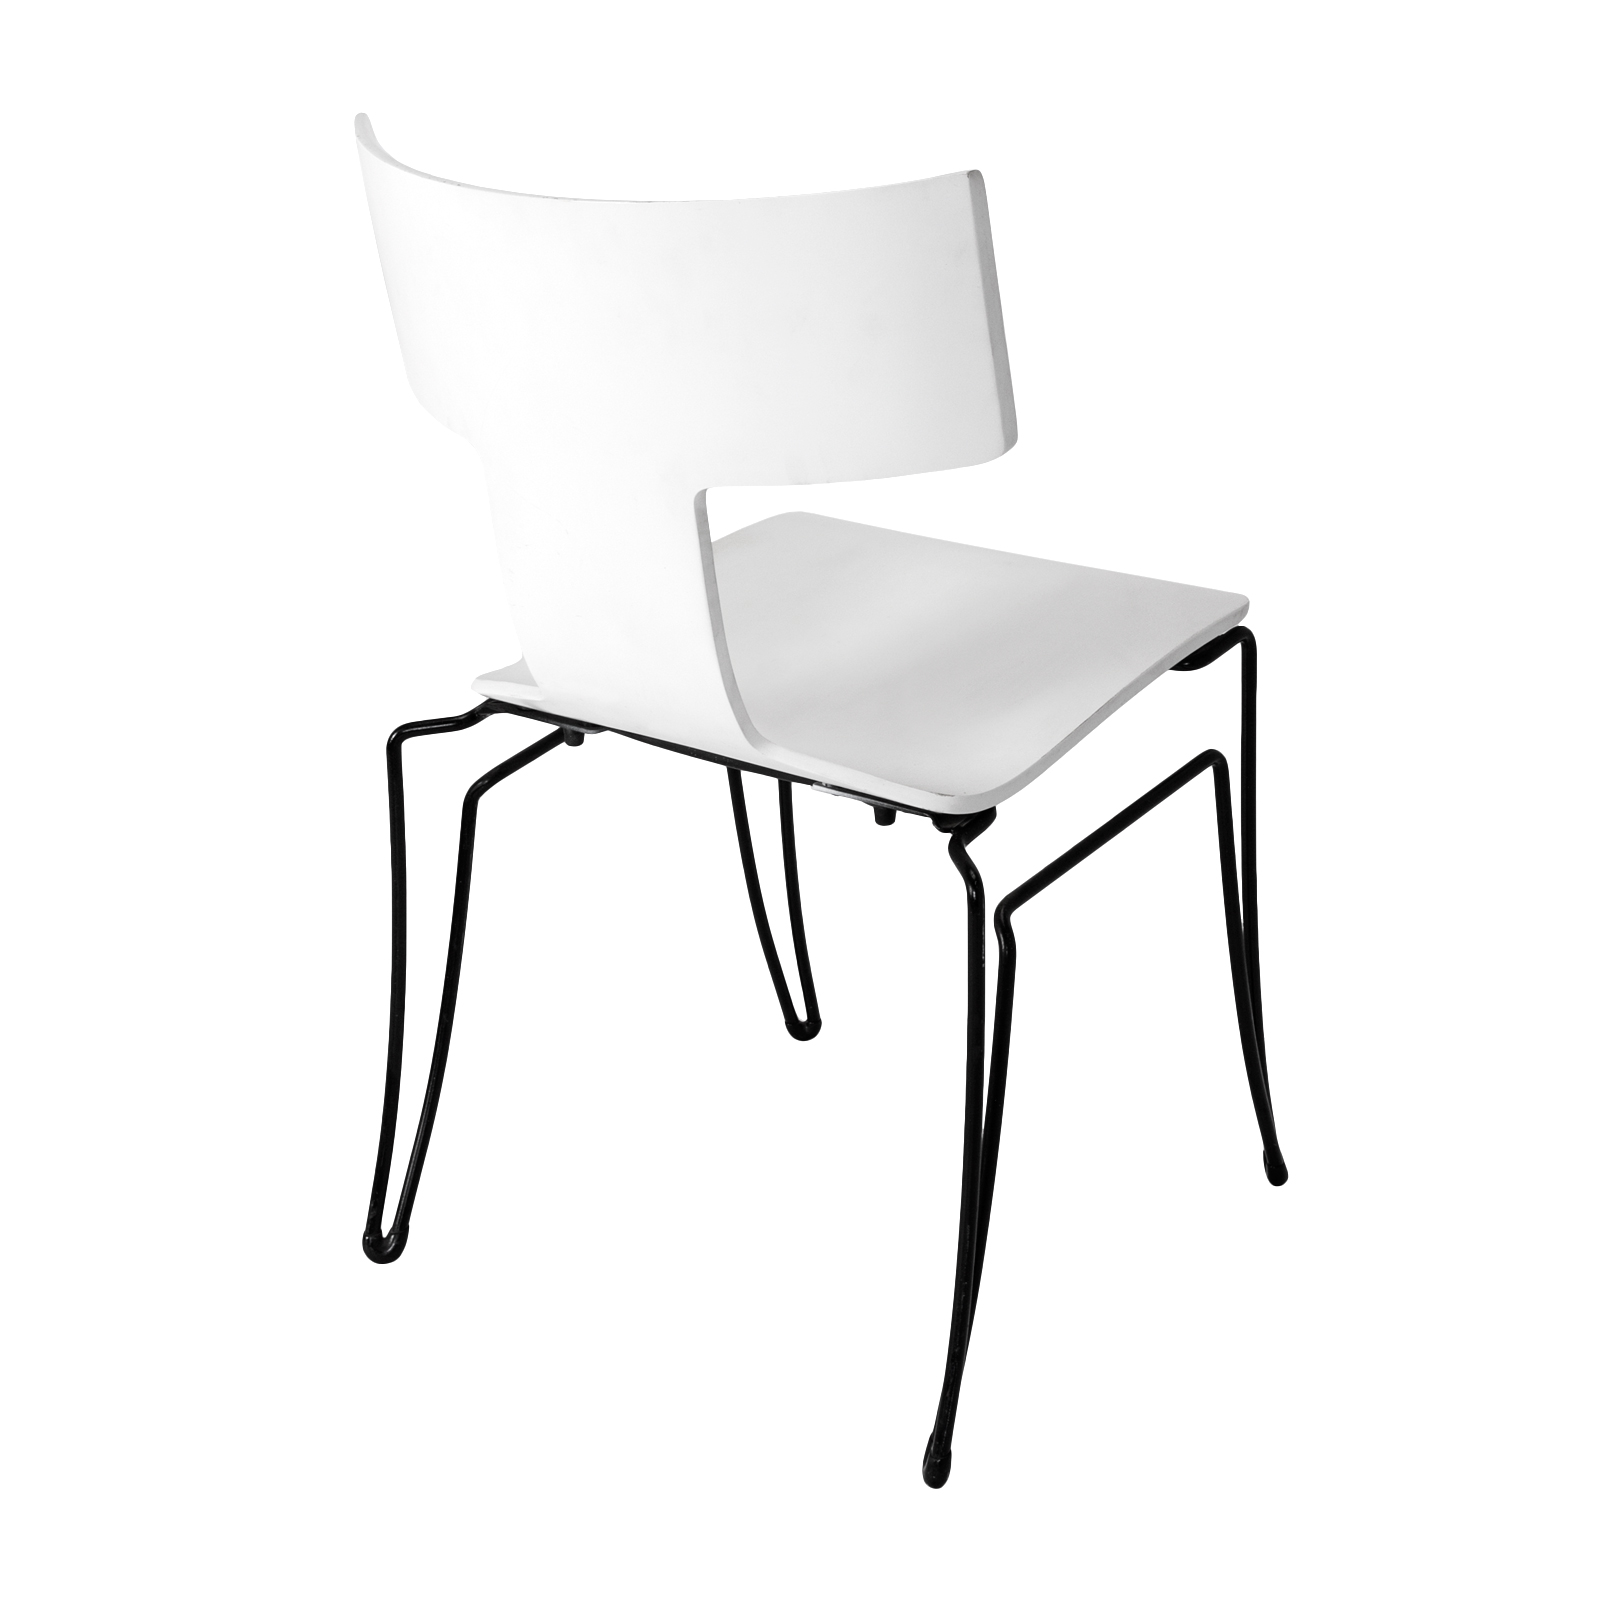 Anziano Chair Rentals Event Furniture Rental